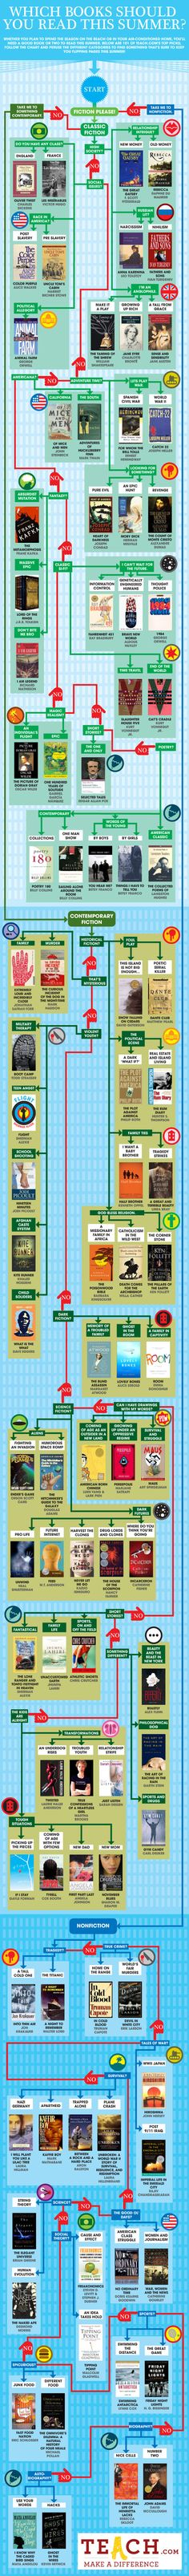 Books to Read This Summer [infographic]